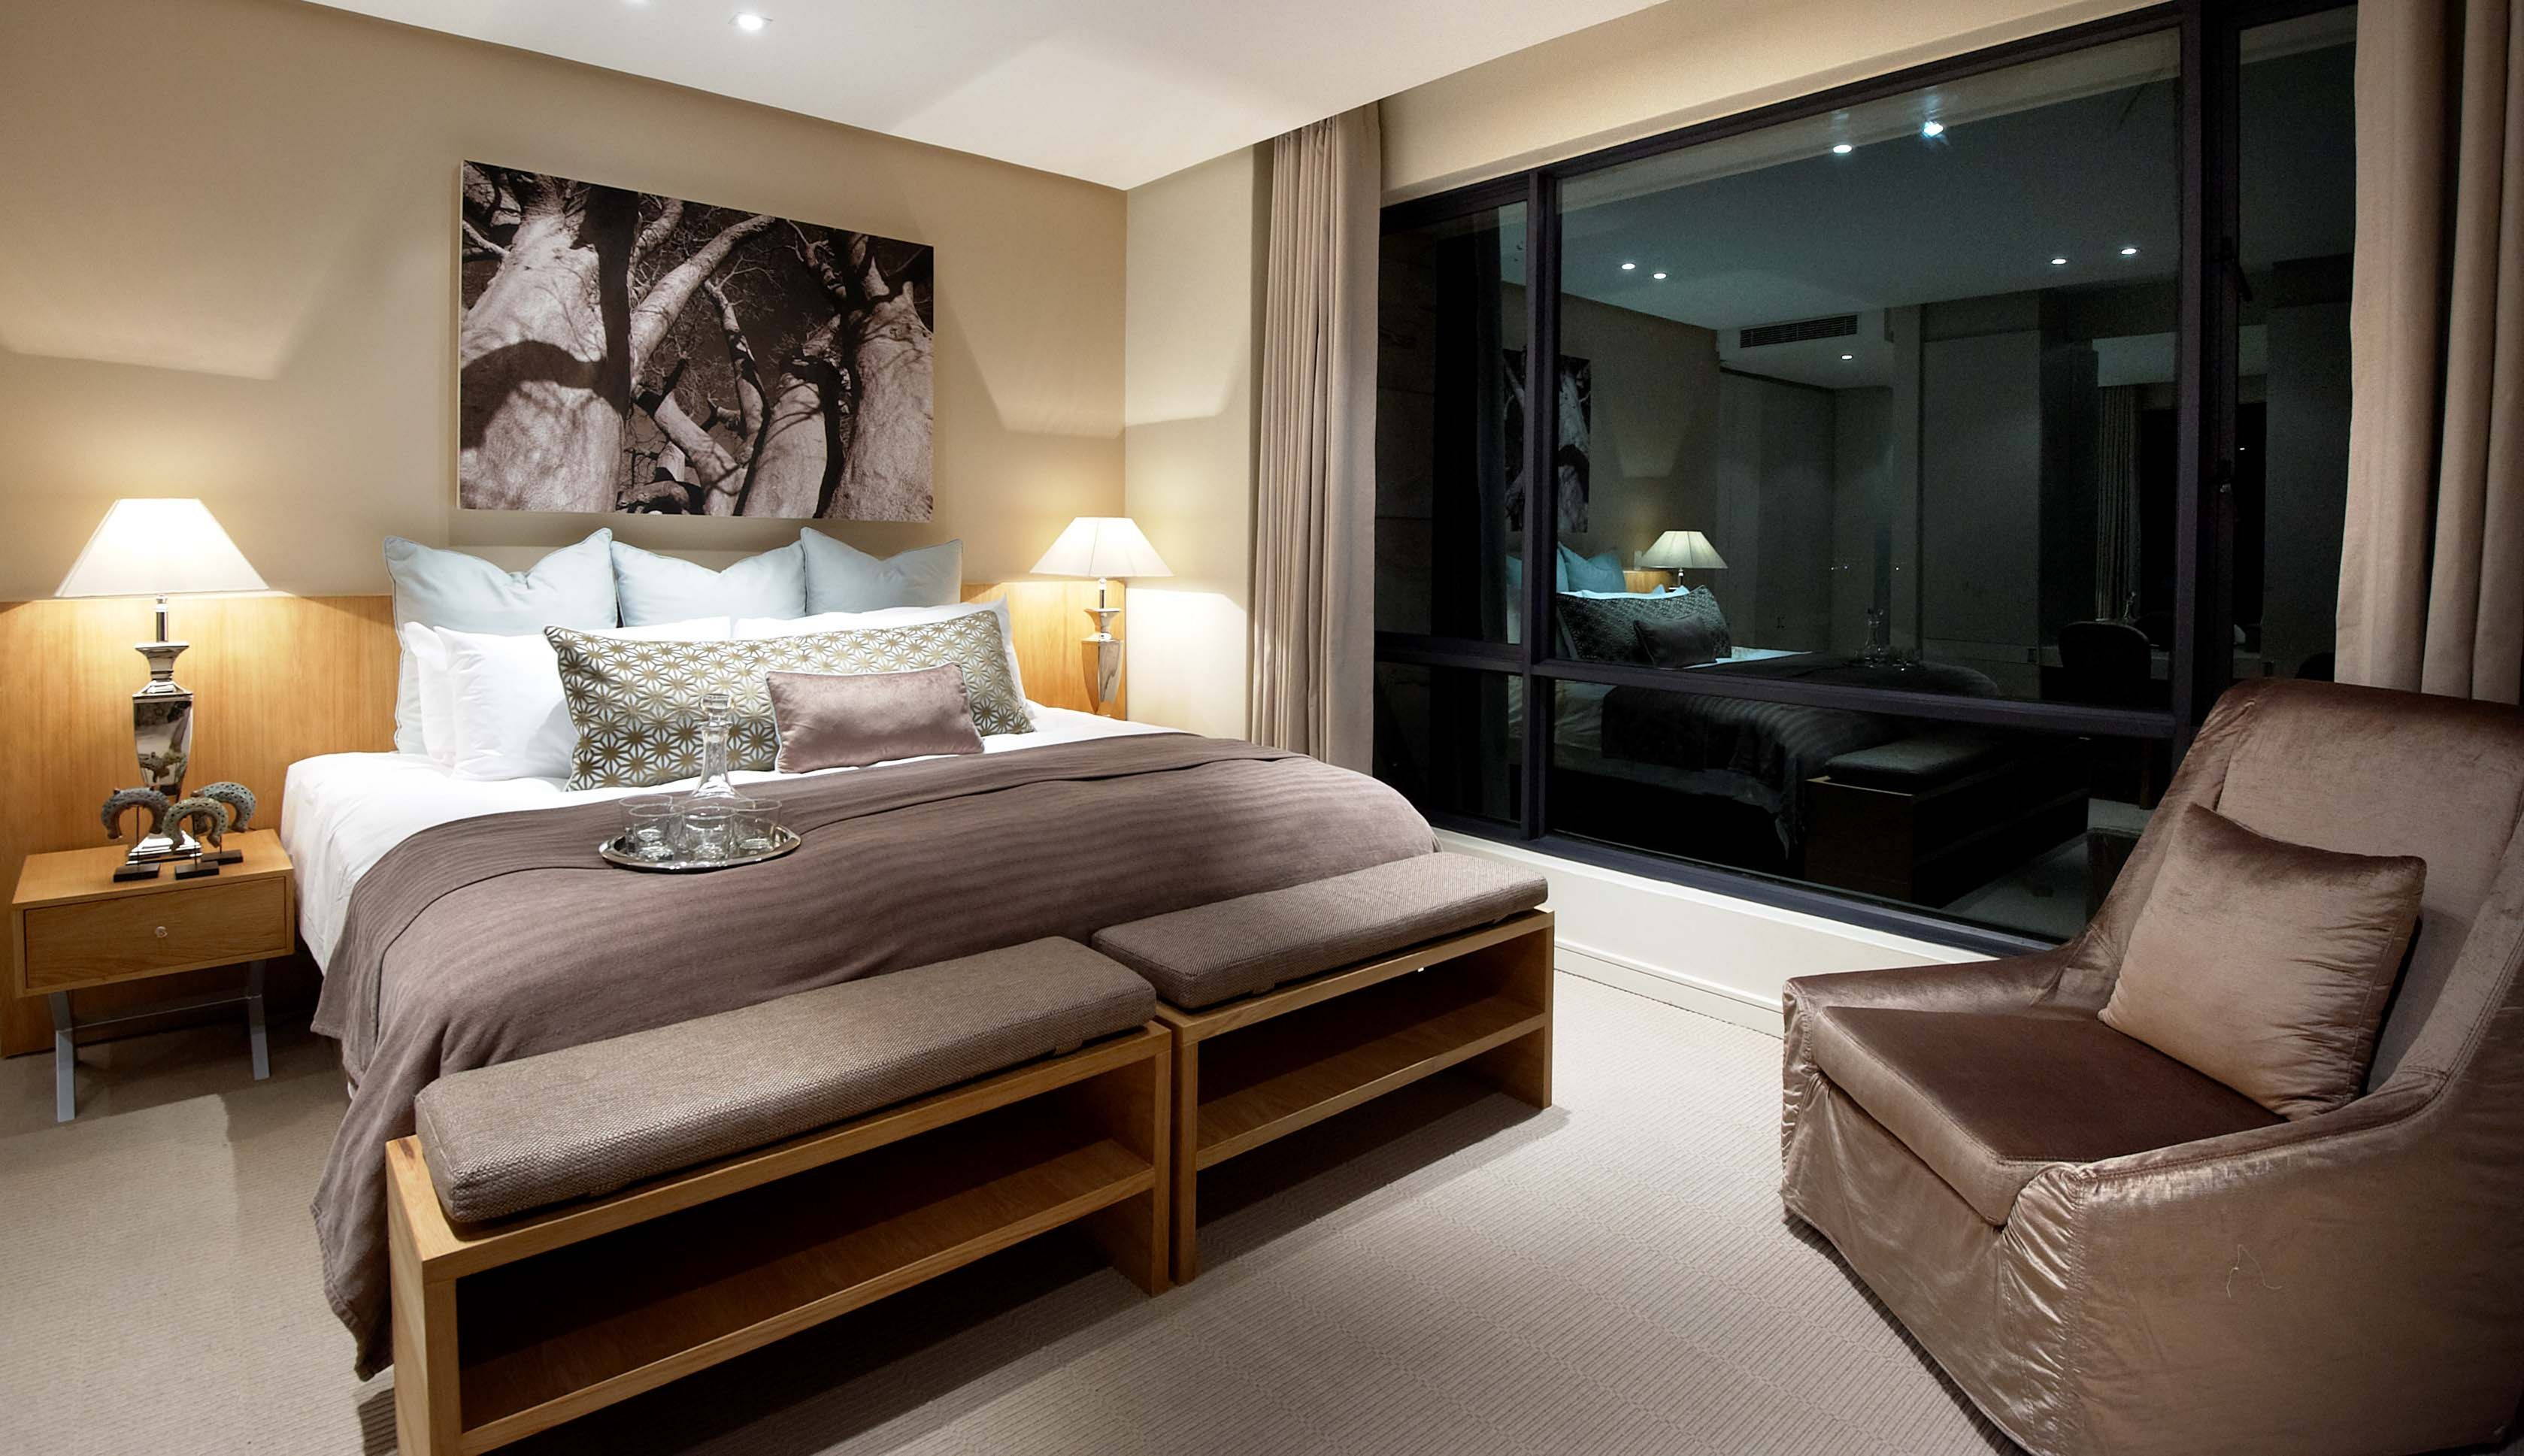 12 fabulous modern apartment bedroom designs for a more on unique contemporary bedroom design ideas for more inspiration id=47640